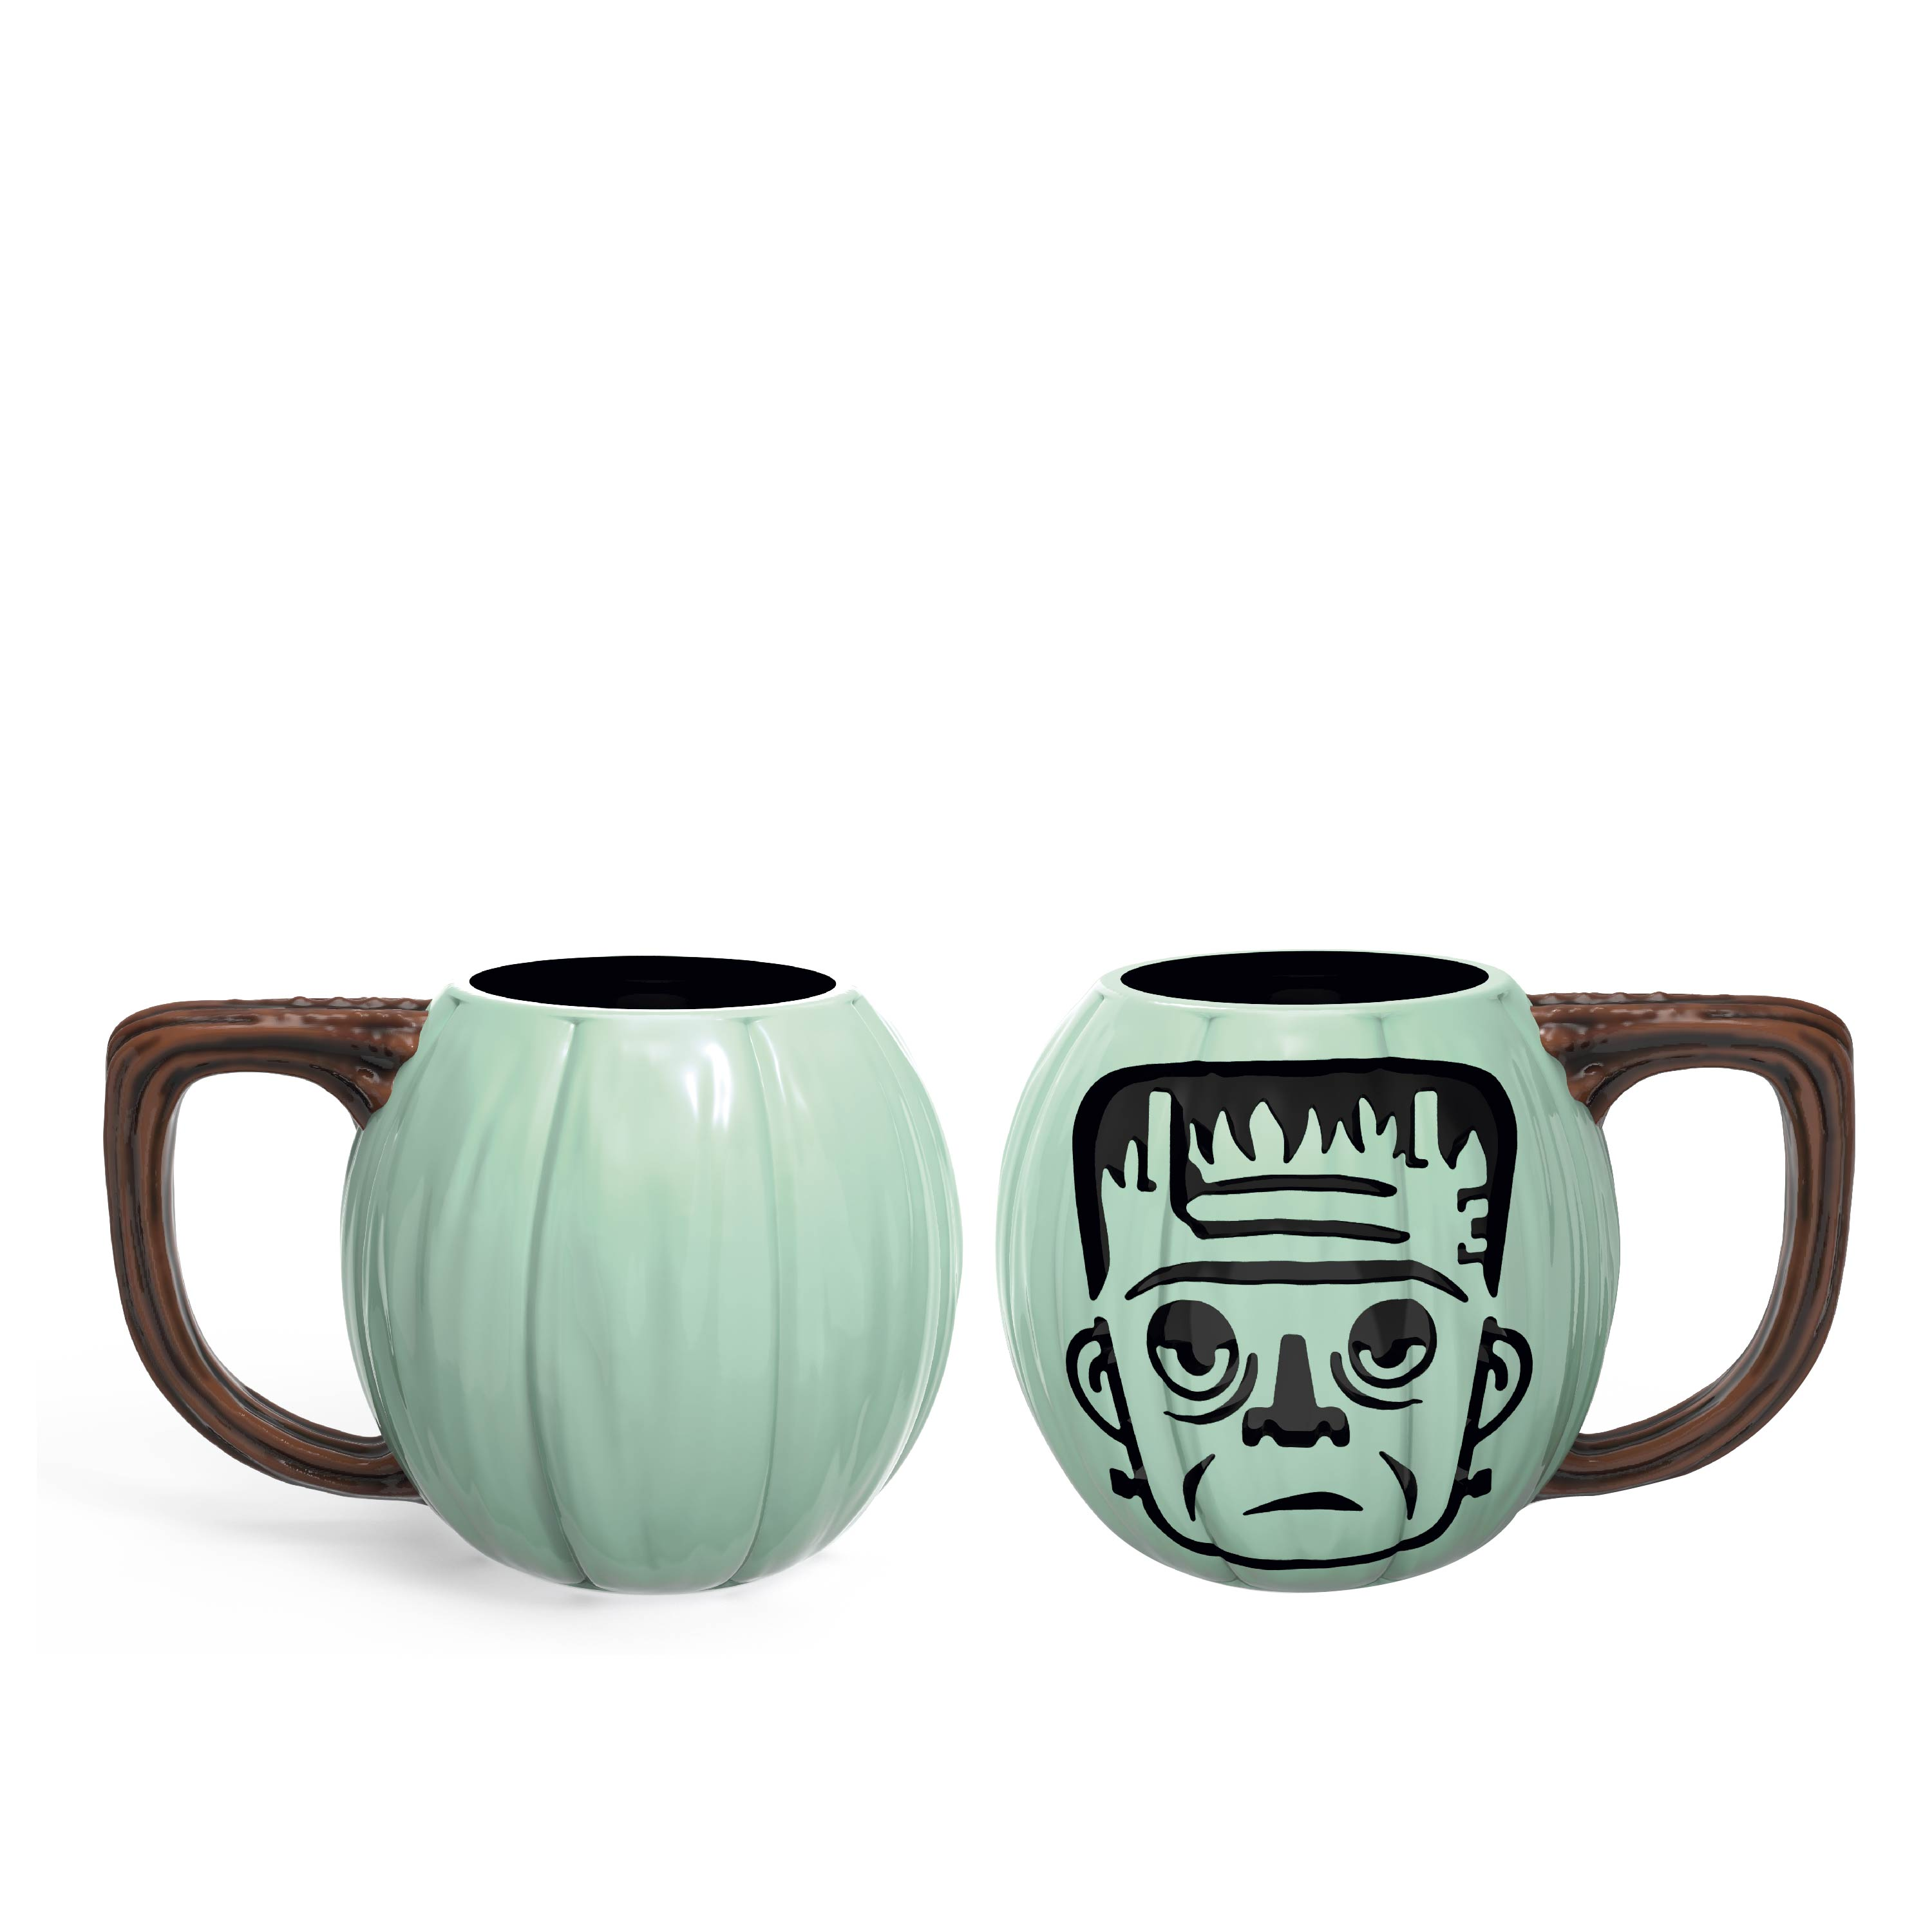 Little Monsters 15 ounce Coffee Mug and Spoon, Frankenstein slideshow image 8